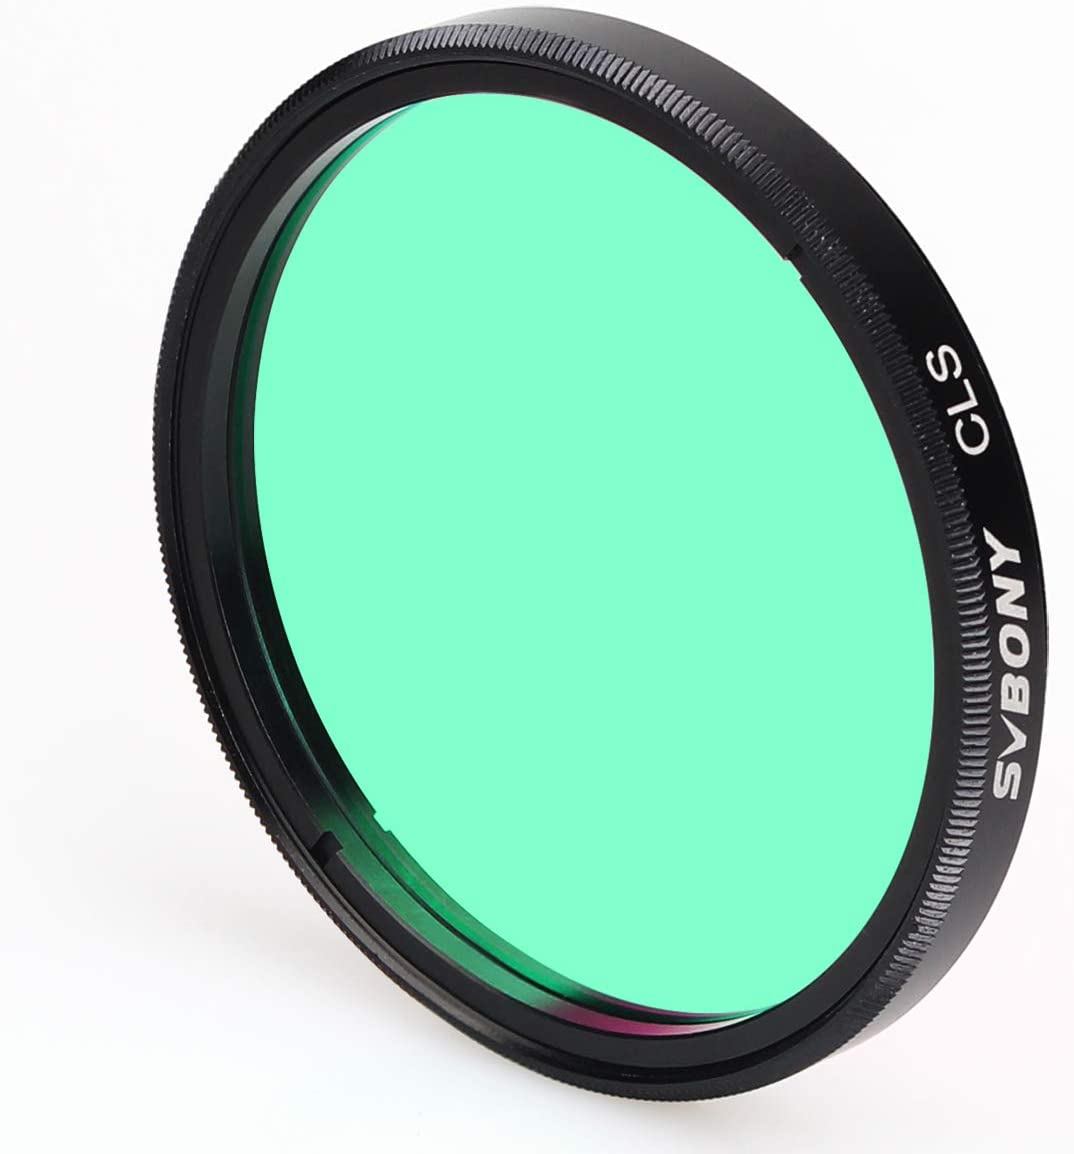 SVBONY Telescope Filter 2 inches CLS Filter City Light Pollution Reduction Filter Broadband Filter Suitable for Deep Sky Visual Astronomical Photography